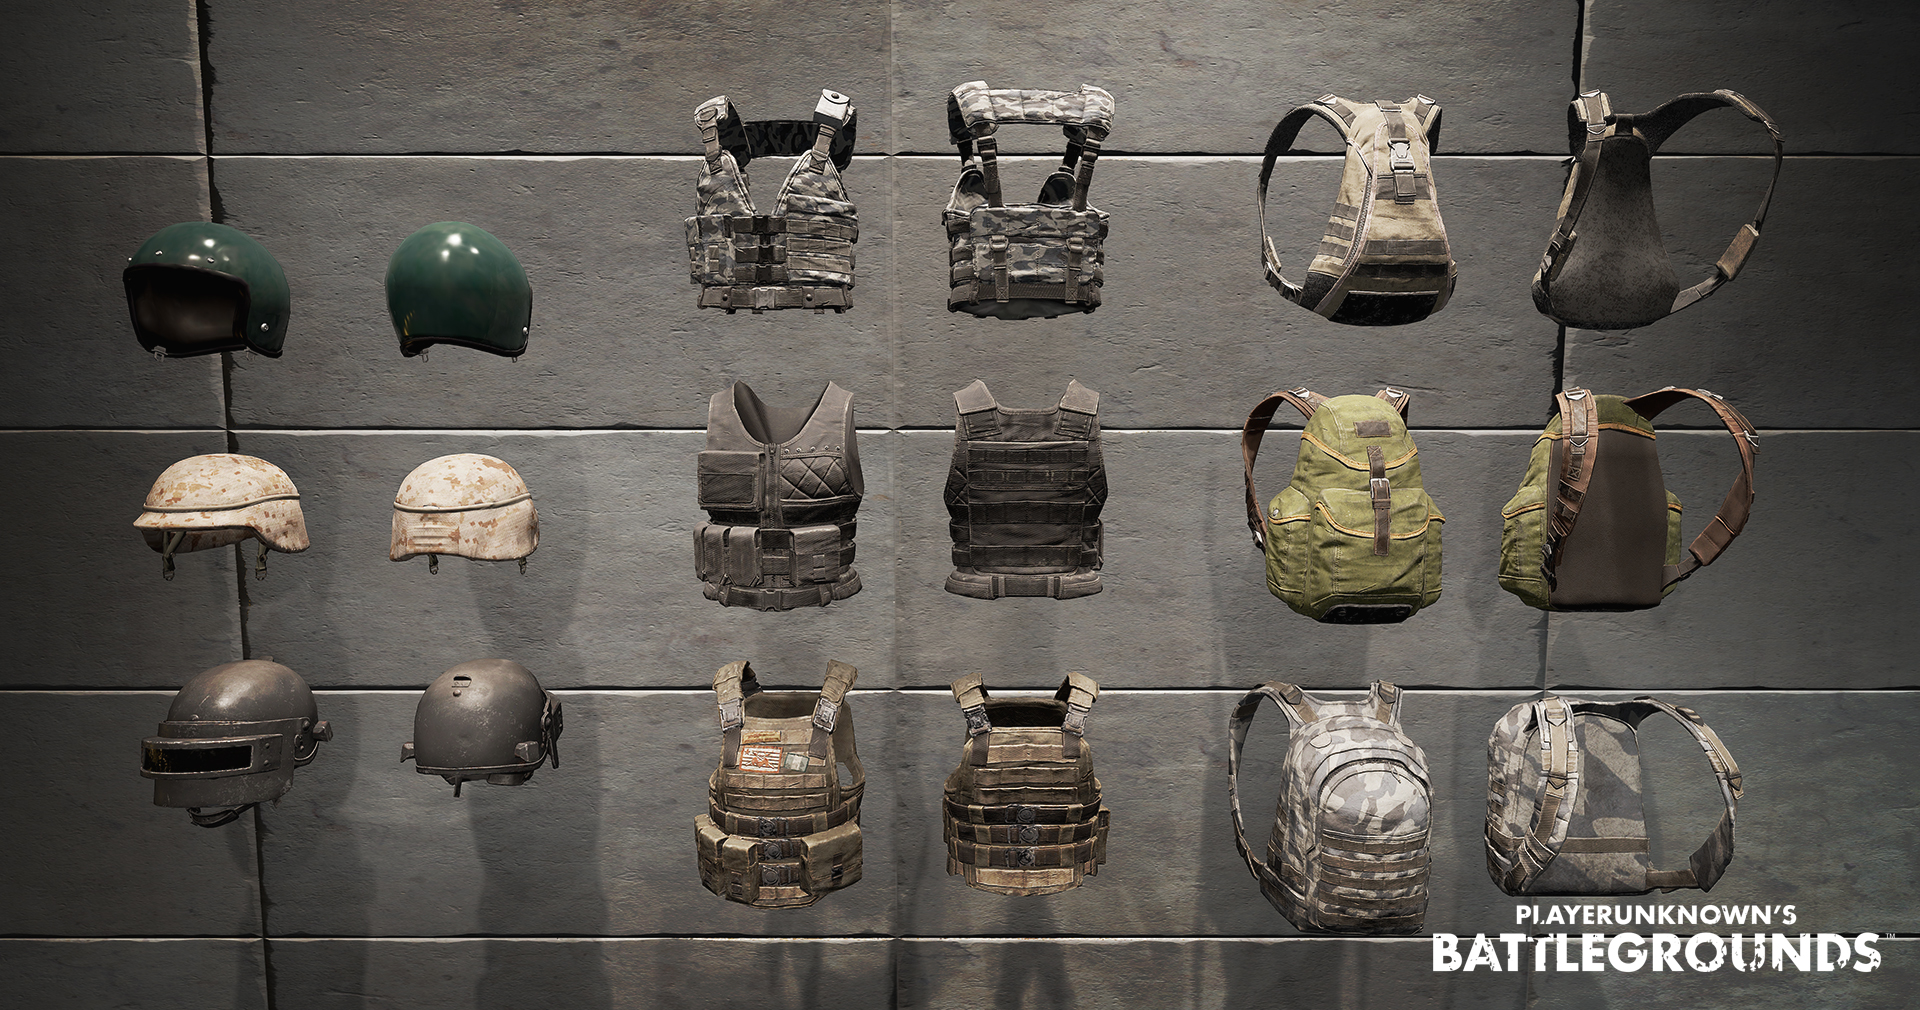 26 Pubg Helmets Wallpapers: PLAYERUNKNOWN'S BATTLEGROUNDS Backgrounds, Pictures, Images